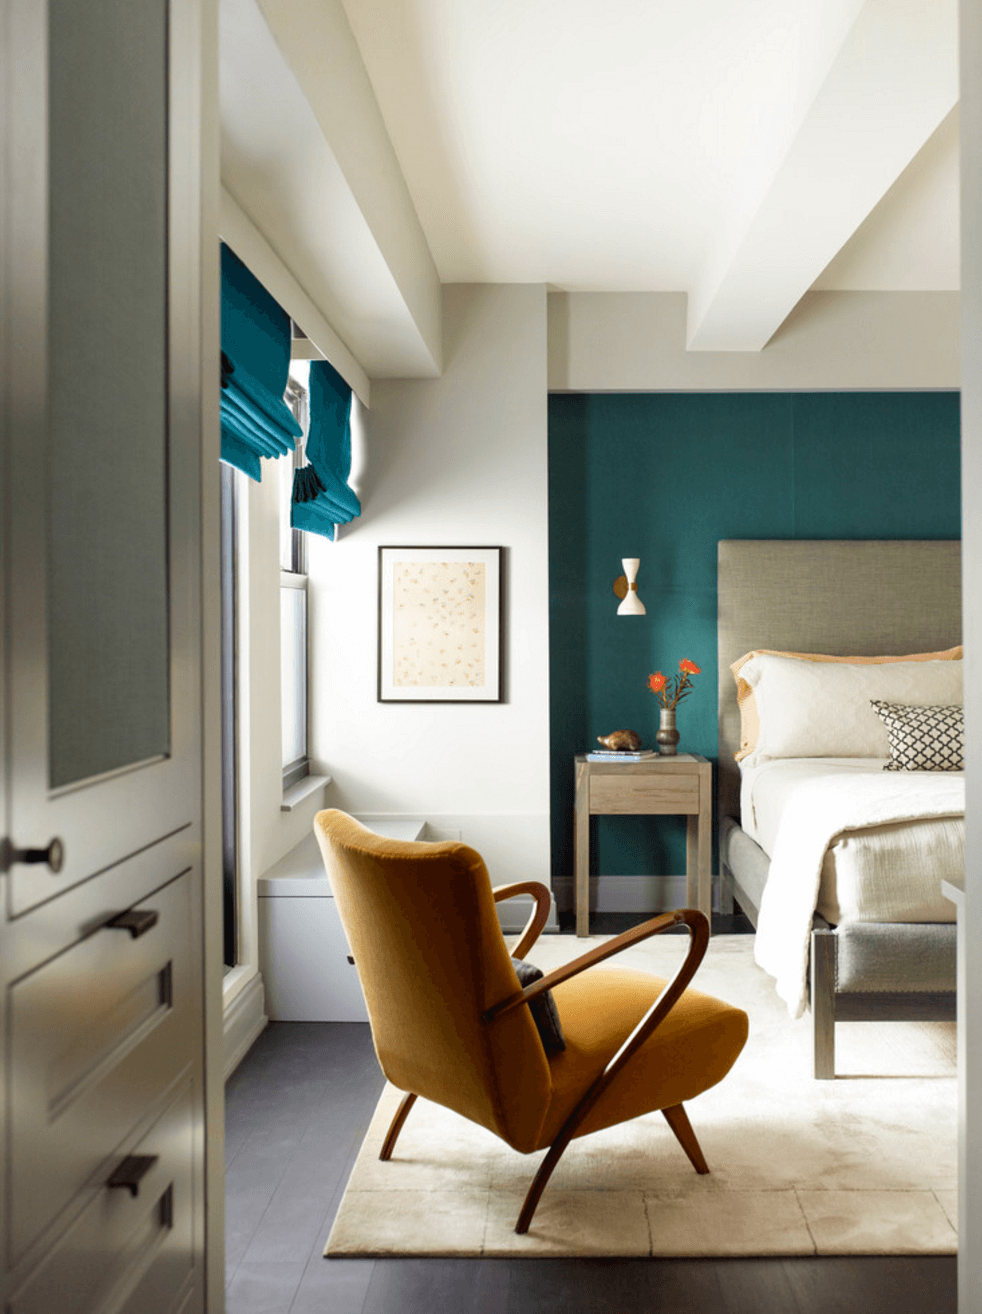 Feature Wall Ideas to Showcase Your Style | Colors | Teal accent ...